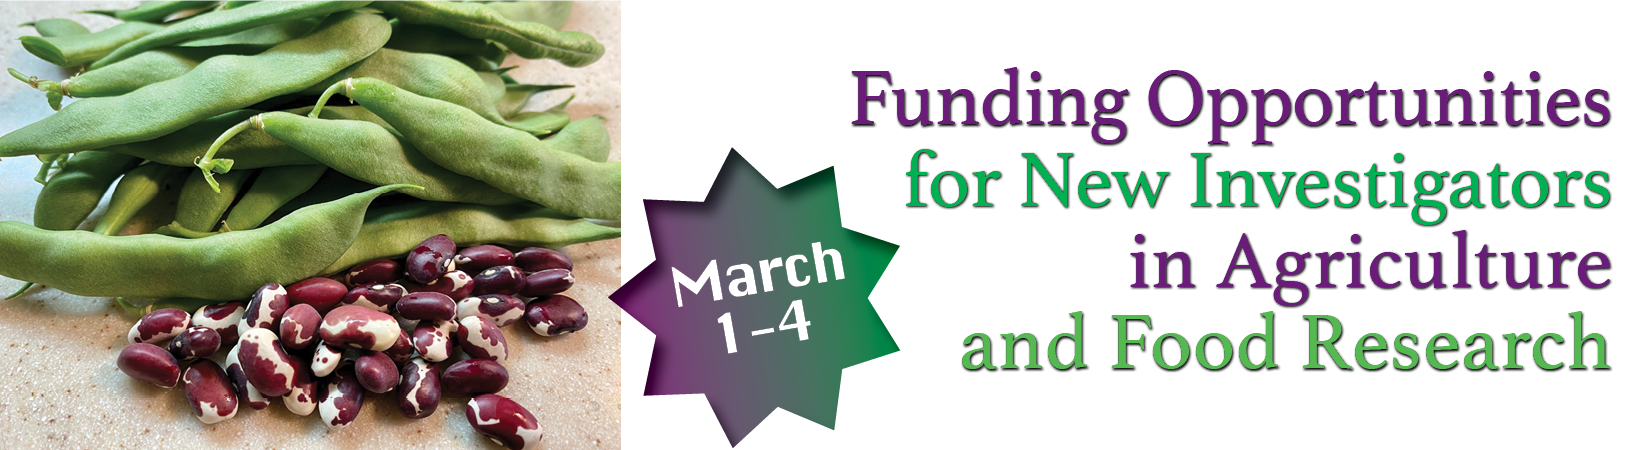 Ag and Food Sci grants, March 1-4